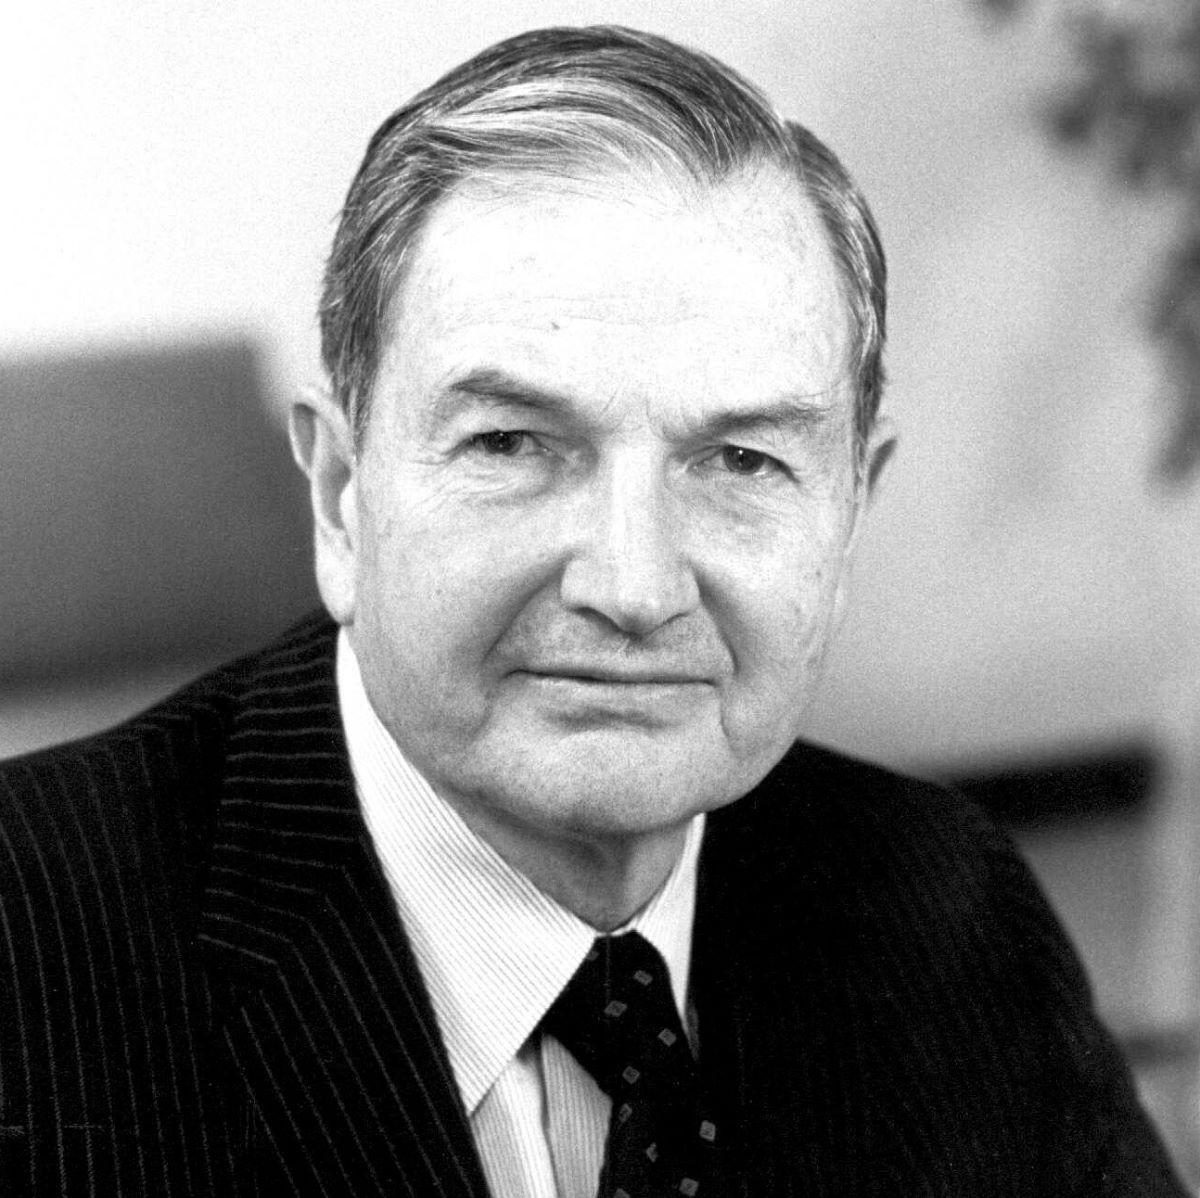 World's oldest billionaire David Rockefeller dies at 101